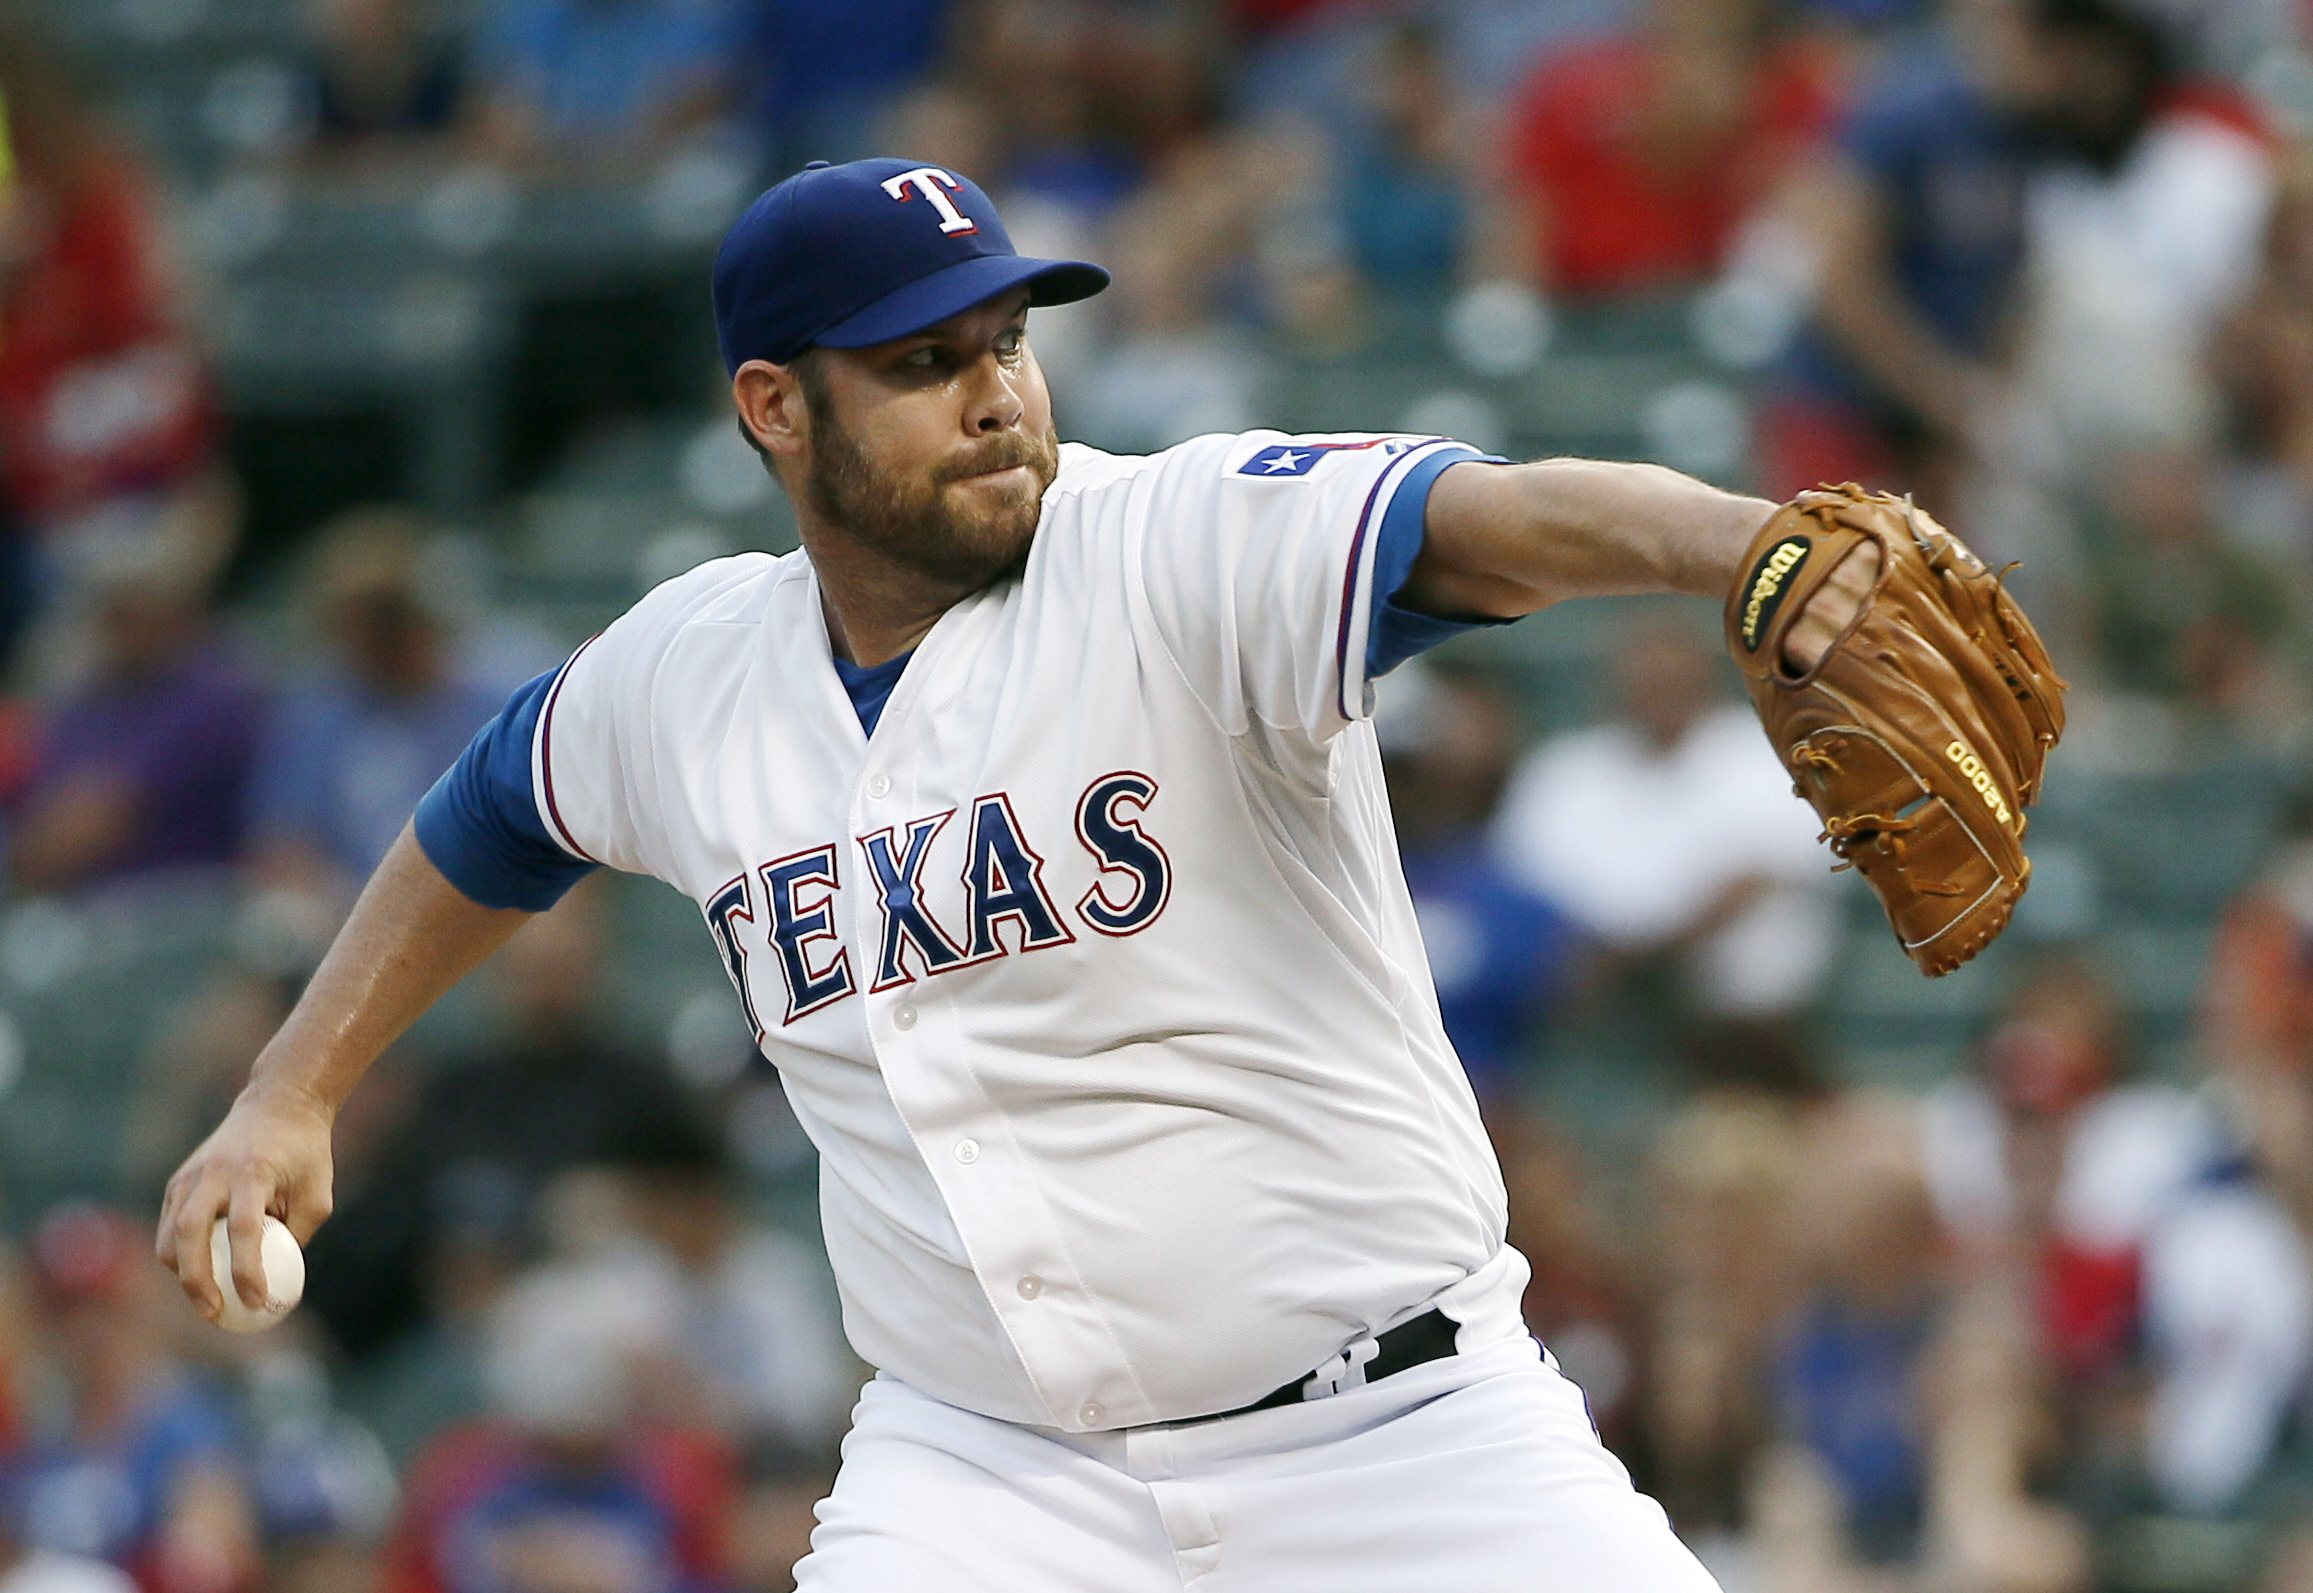 Texas Rangers starting pitcher Colby Lewis works against the Oakland Athletics during the first inning of a baseball game Friday, Sept. 11, 2015, in Arlington, Texas. (AP Photo/Tony Gutierrez)